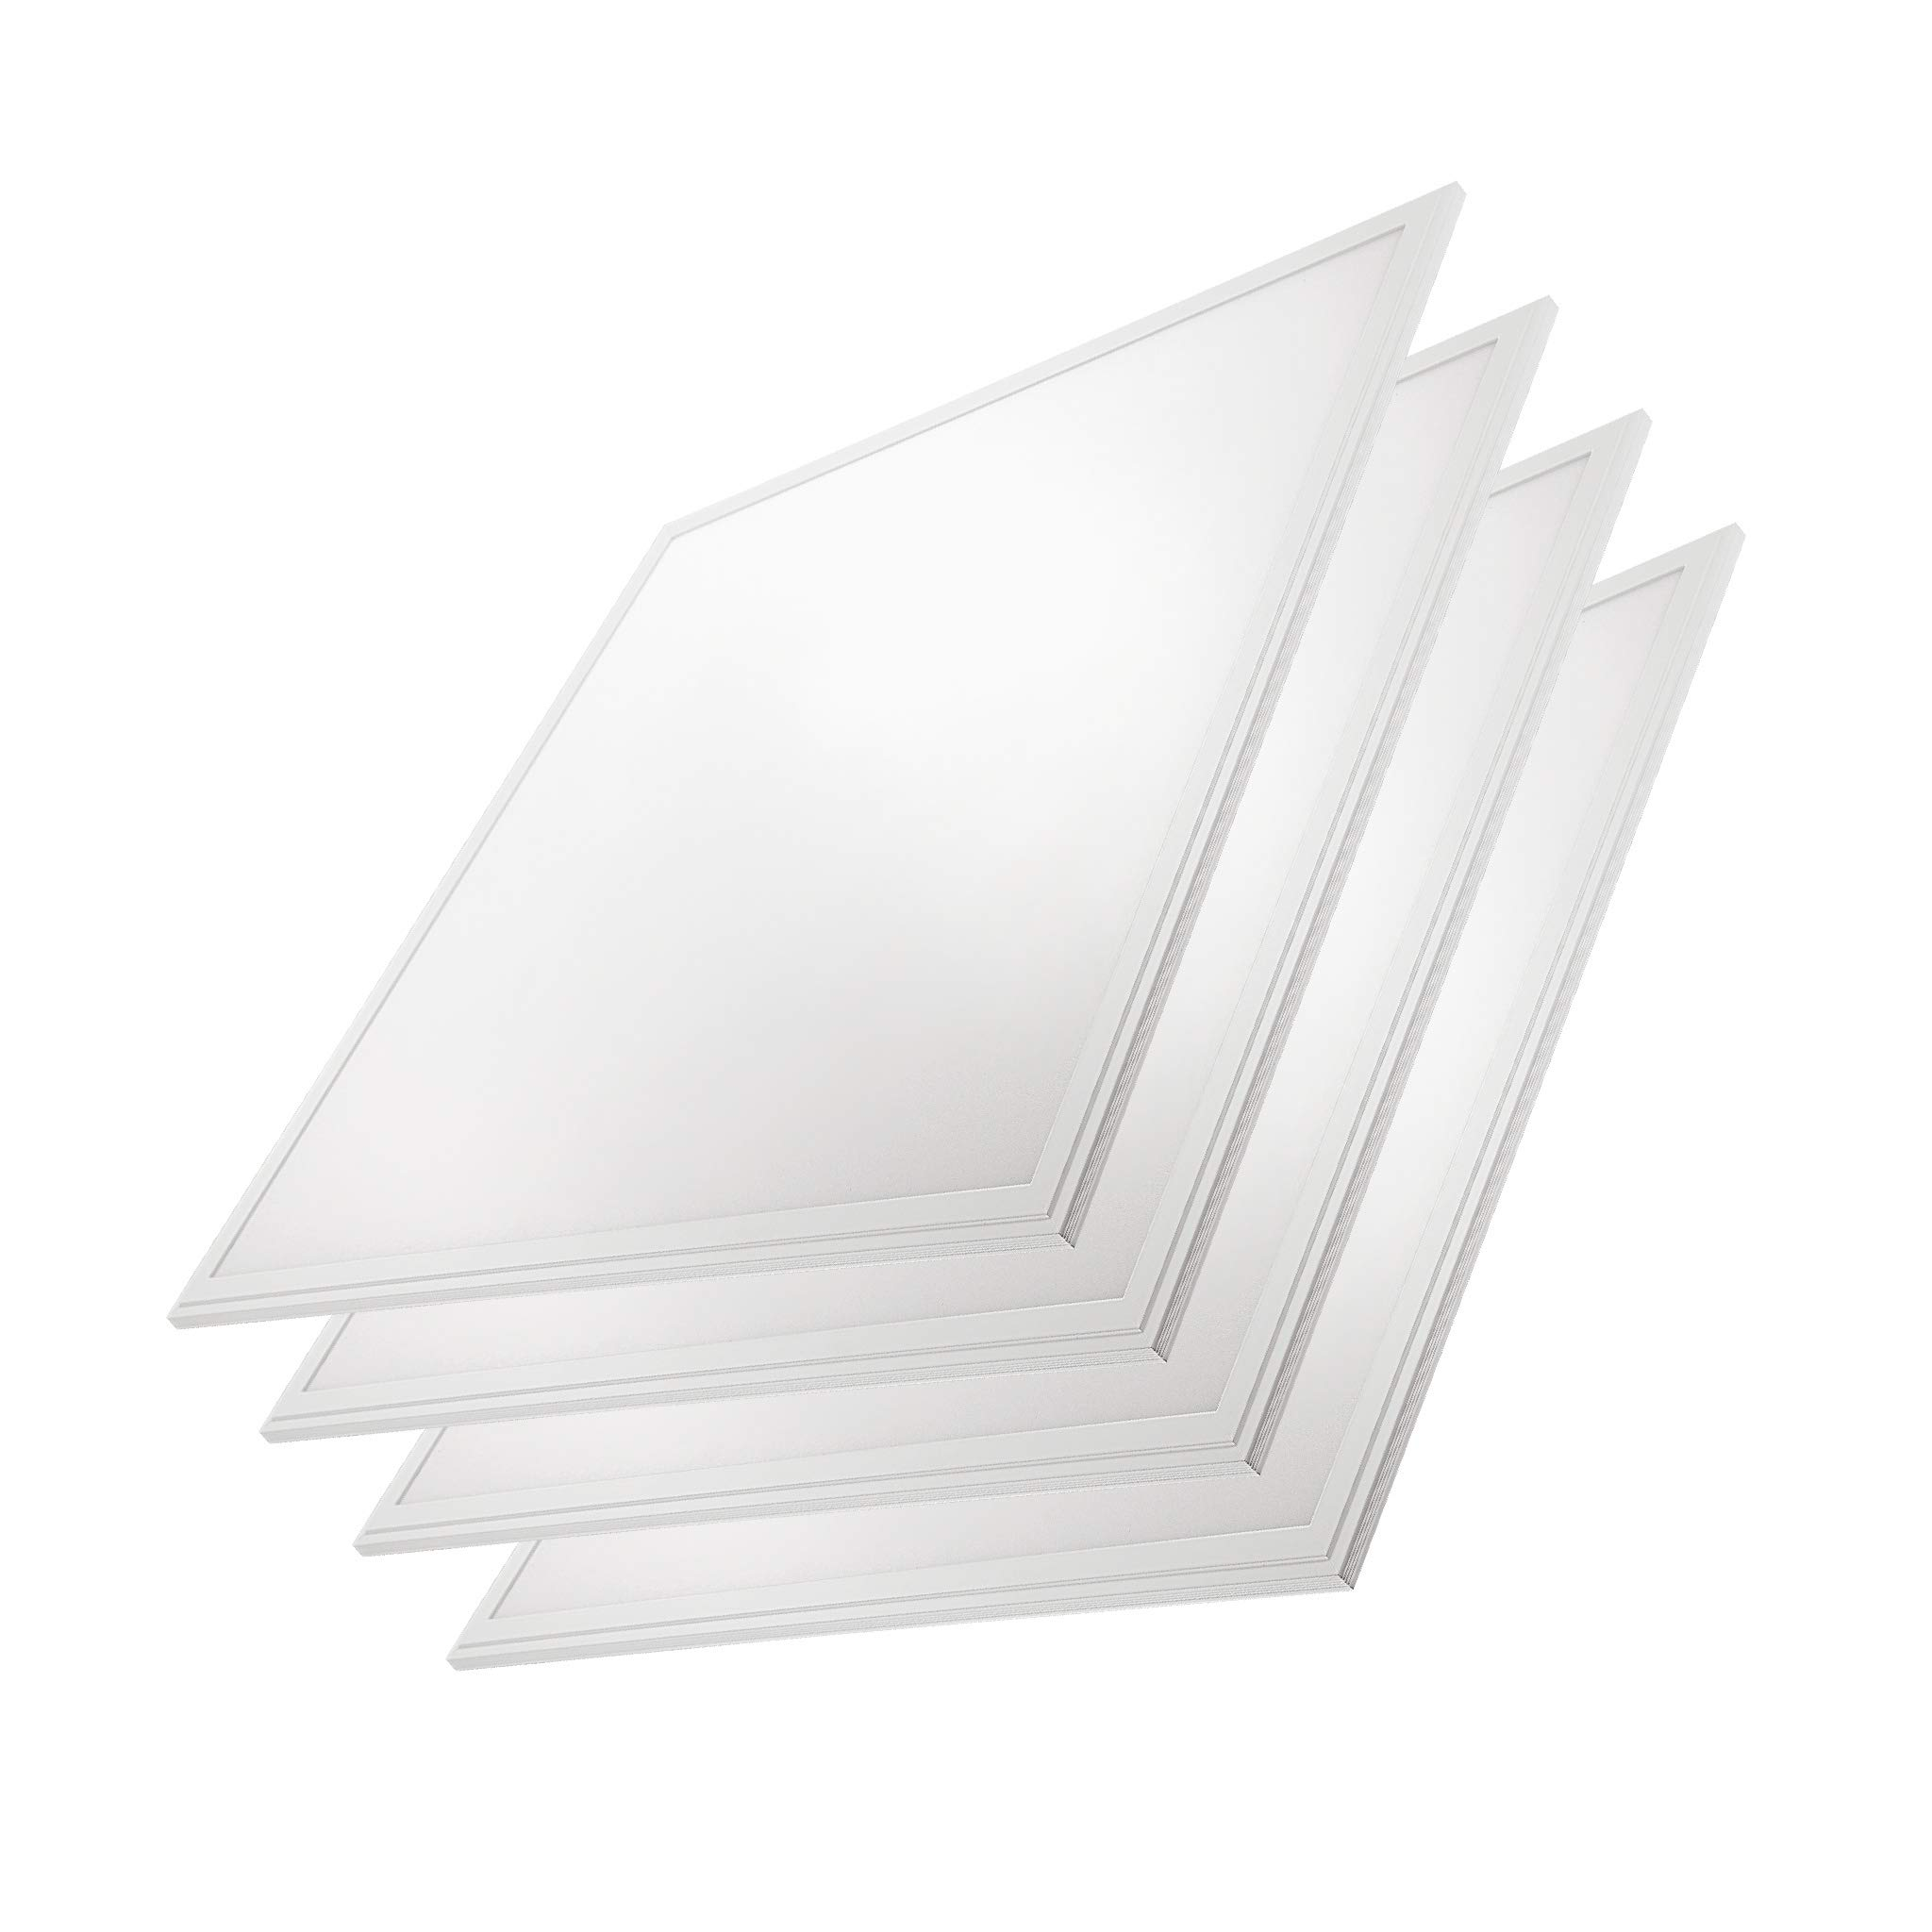 2x2 Panel Troffer Edge-Lit Panel (4 PACK) 10 Year Warranty; 24'' x 24'' 40W; 4,600 Lumens= 115lm/w 120V-277V; 0-10V Dimmable; UL/DLC Listed; Warm White 3500K